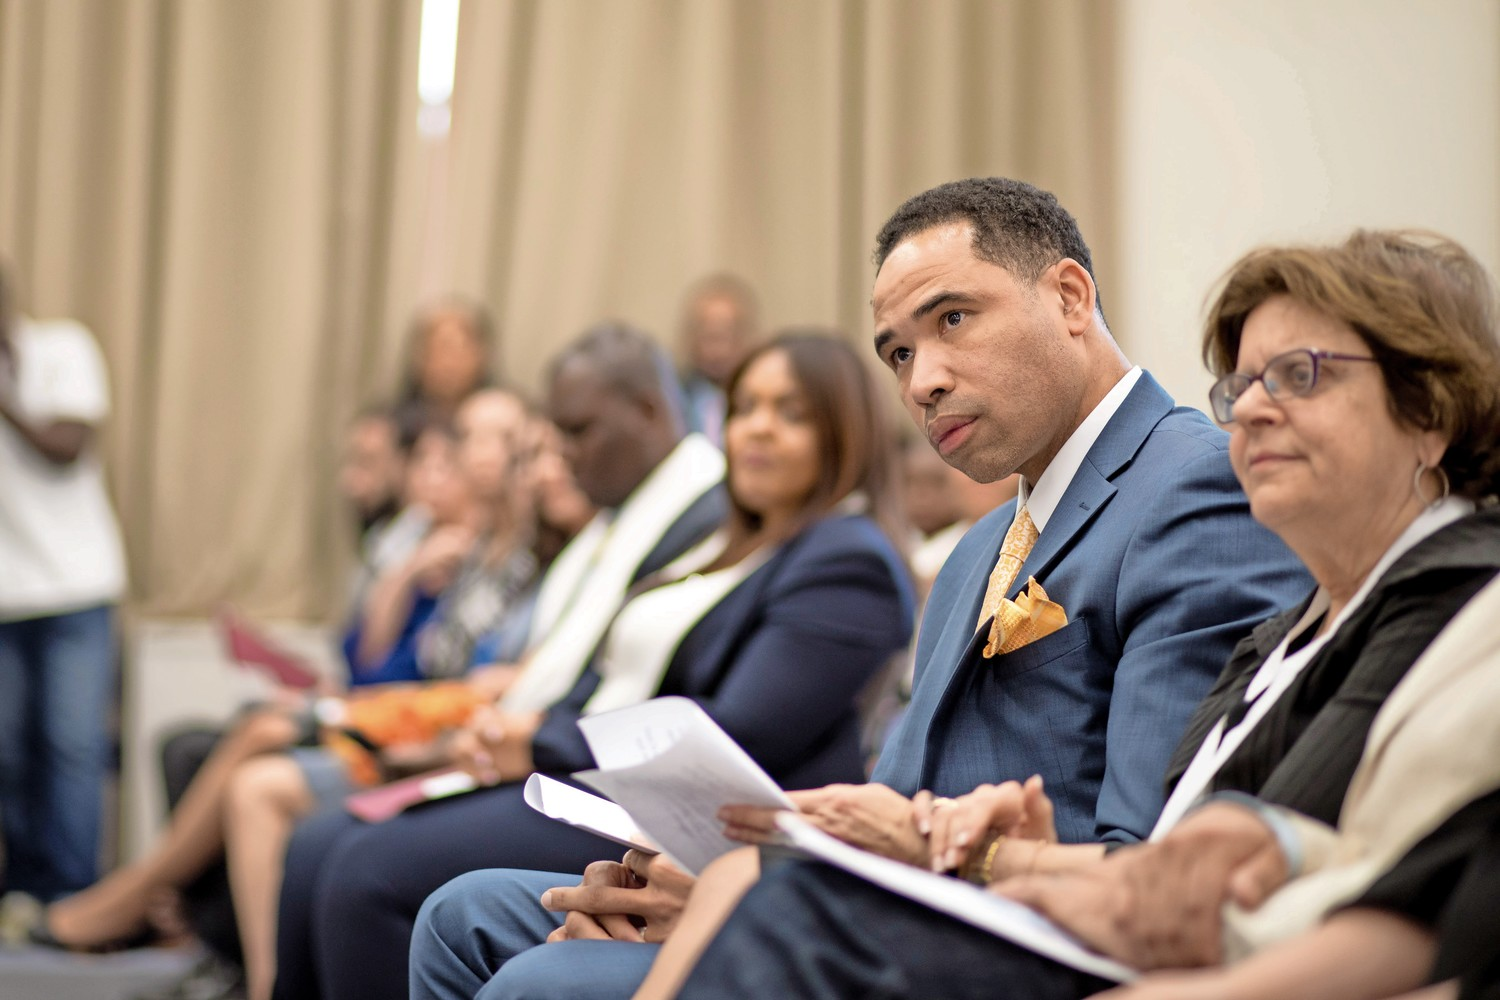 Lawrence Fauntleroy, a graduating student at Lehman College, listens as he is introduced at the school's first induction ceremony for adult degree program students into the national honor society, Upsilon Sigma of Alpha Sigma Lambda.